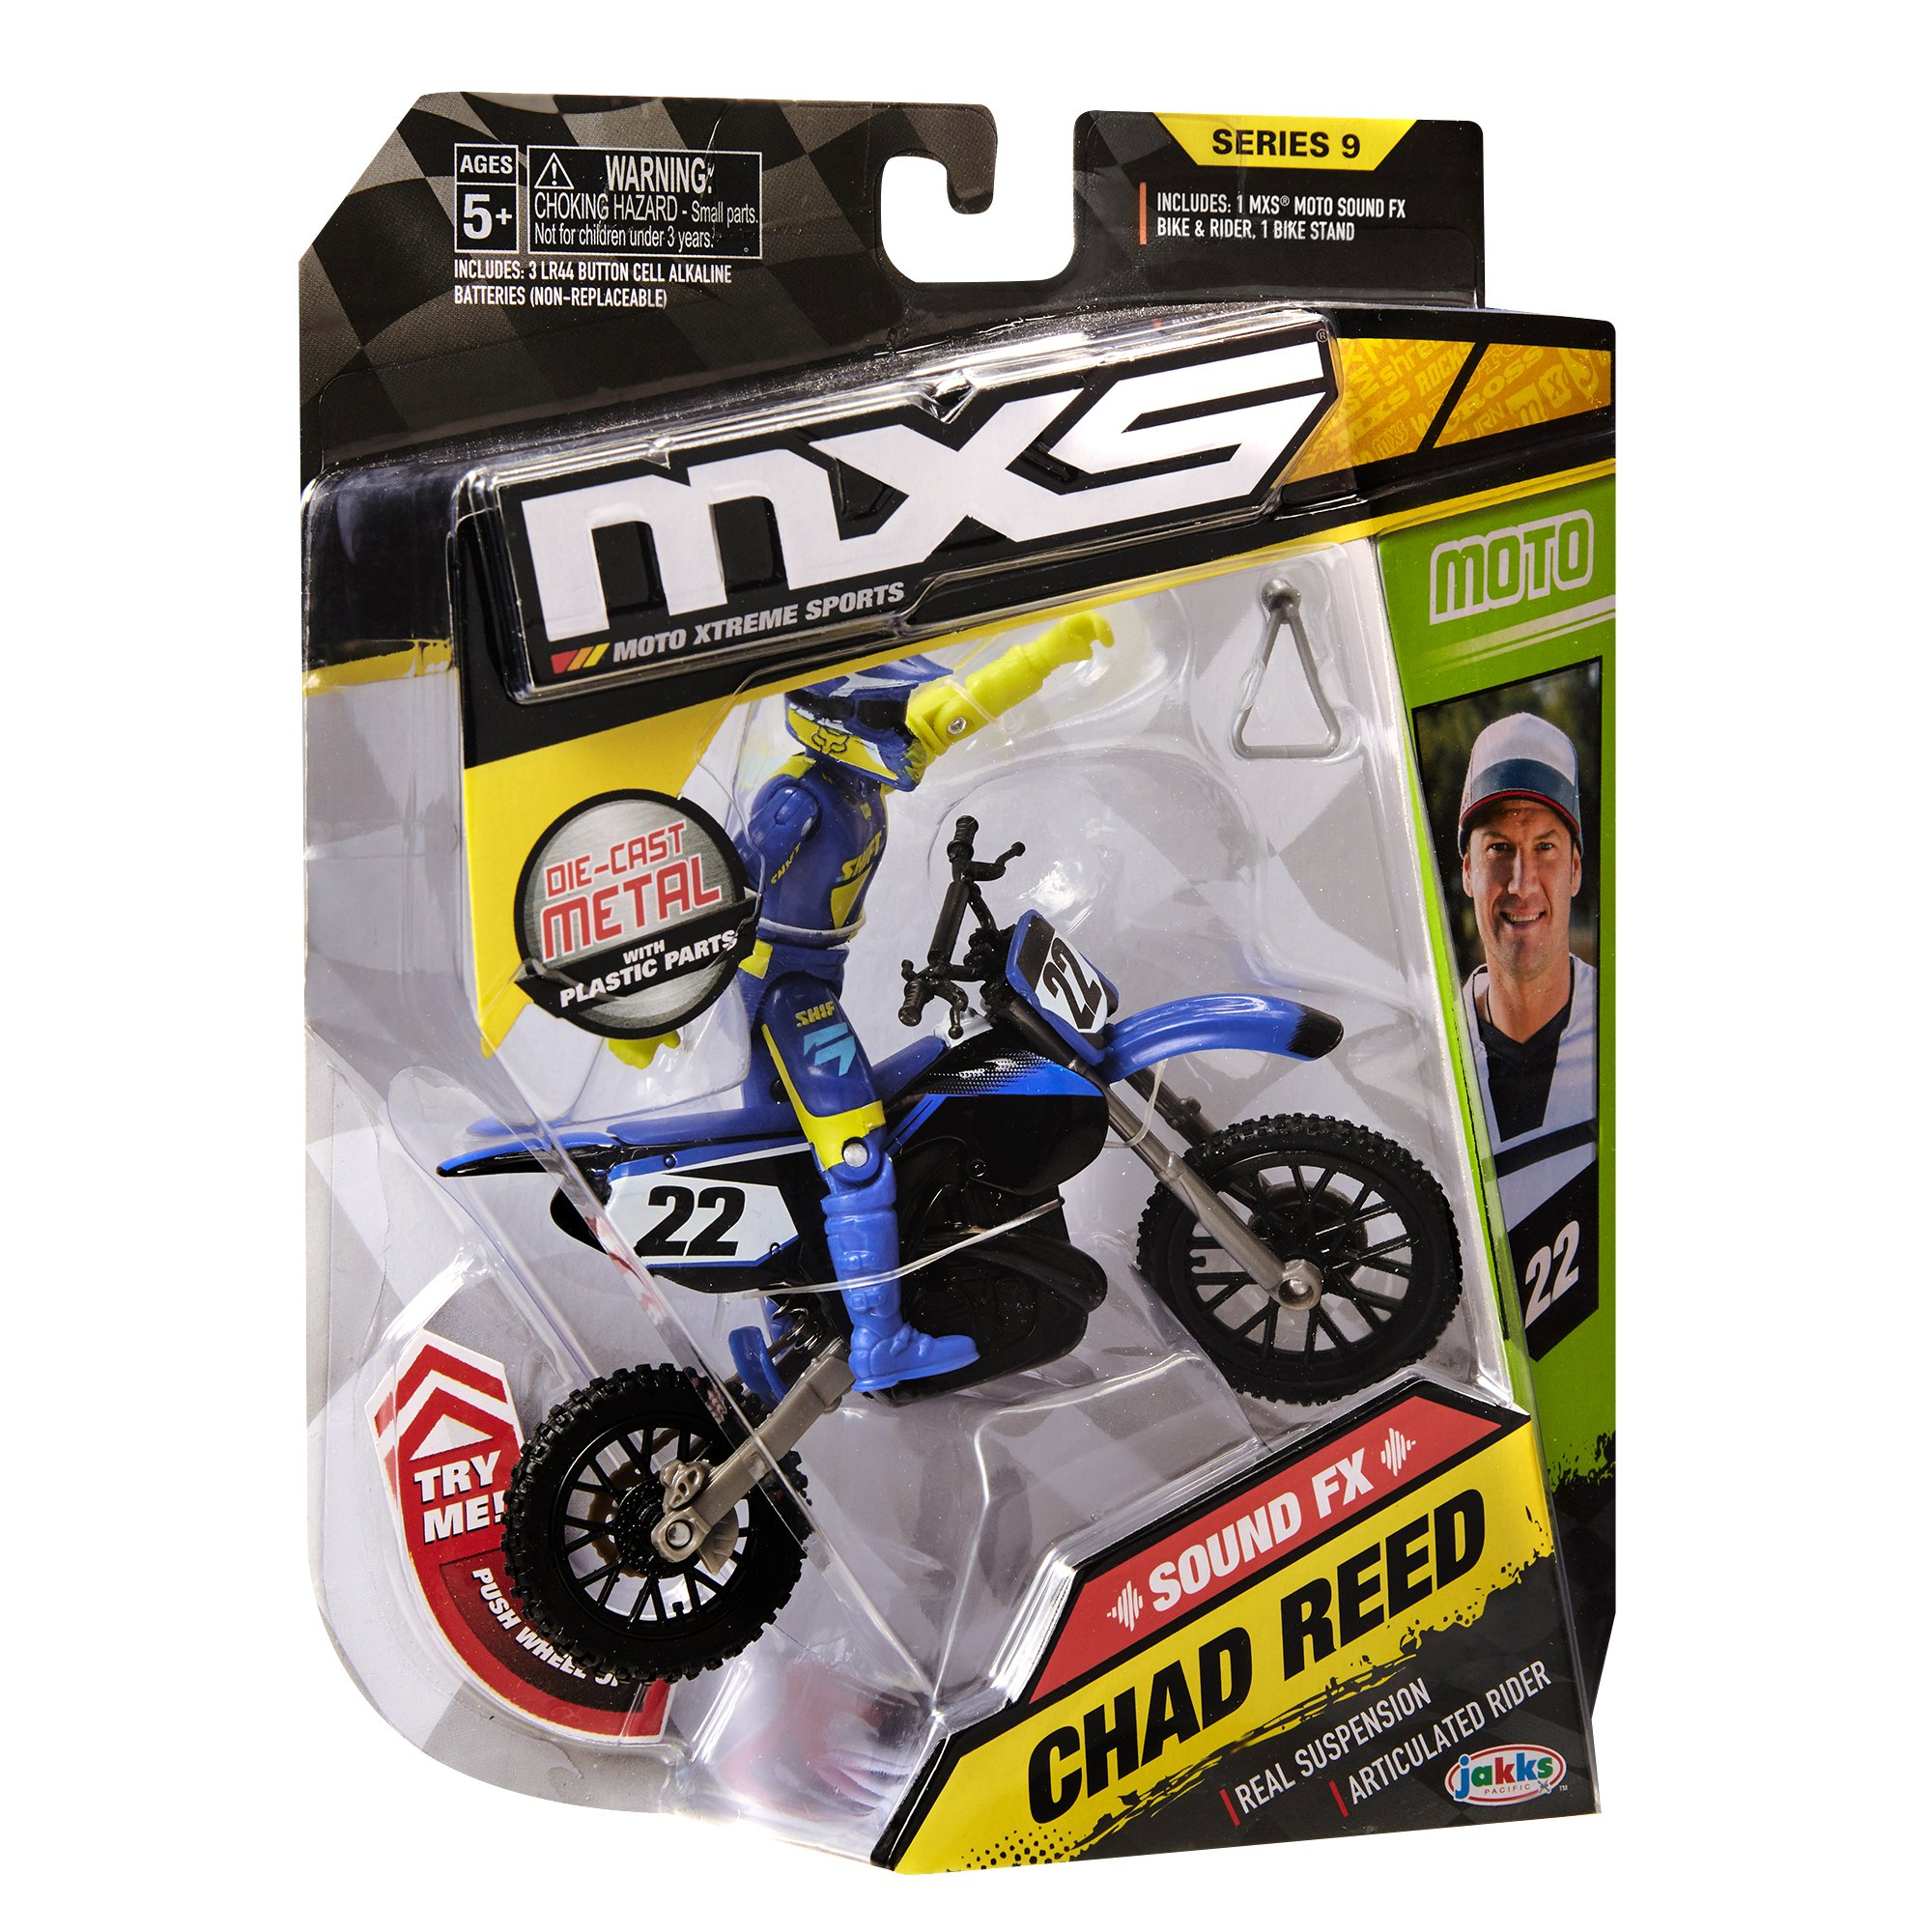 MXS Boys Chad Reed SFX Bike & Rider Set by MXS (Image #11)